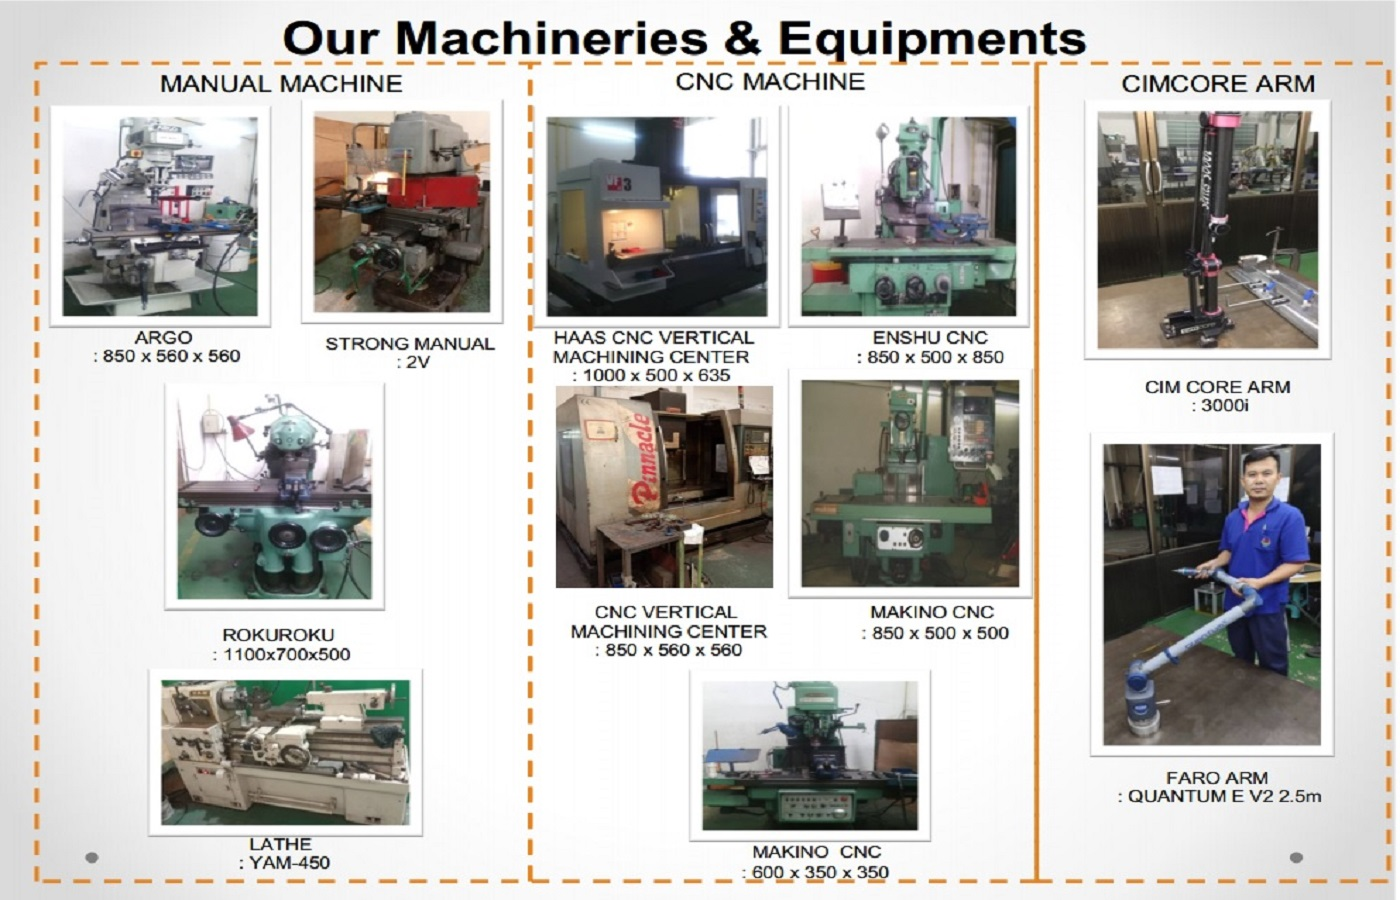 our machineriesre10263